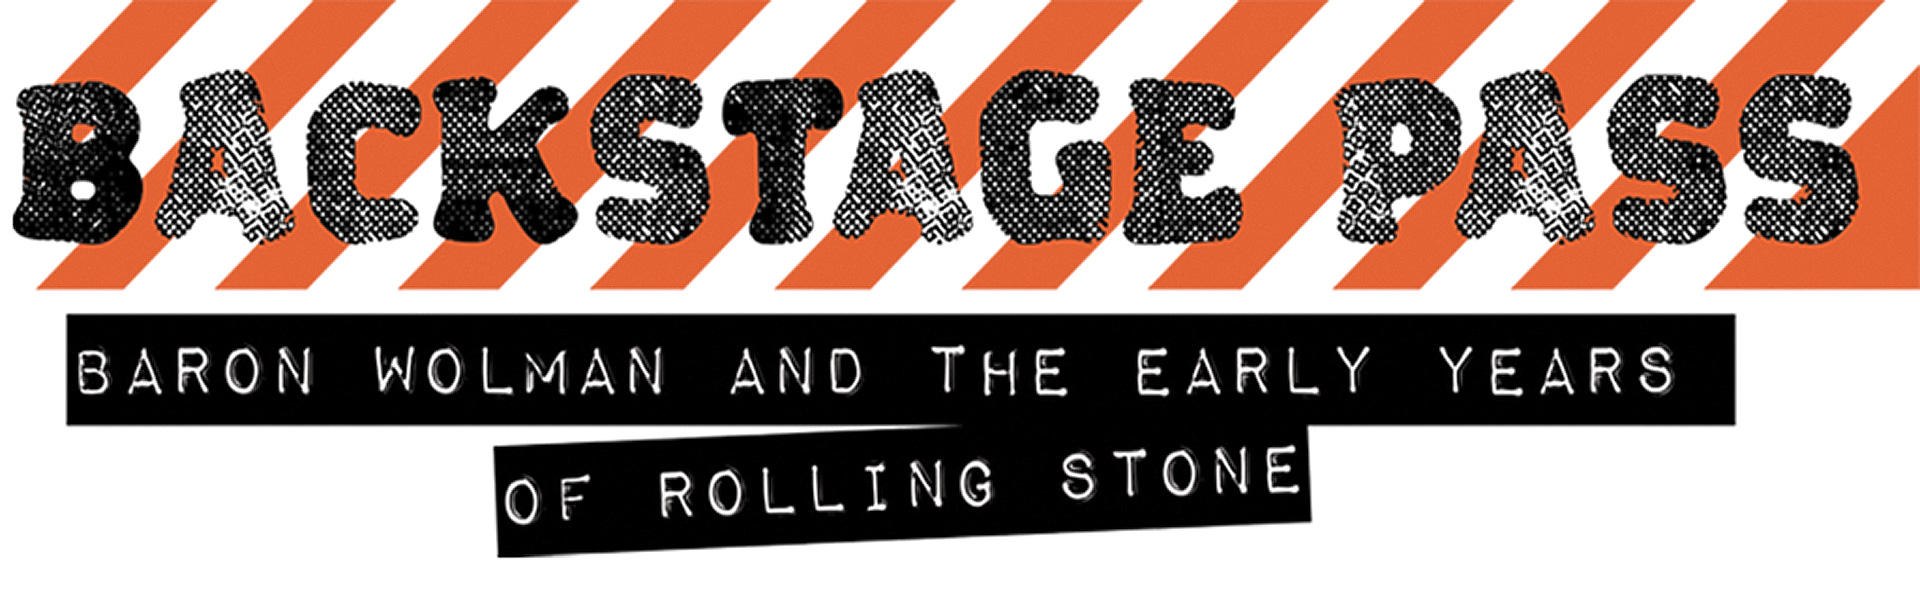 Backstage Pass logo